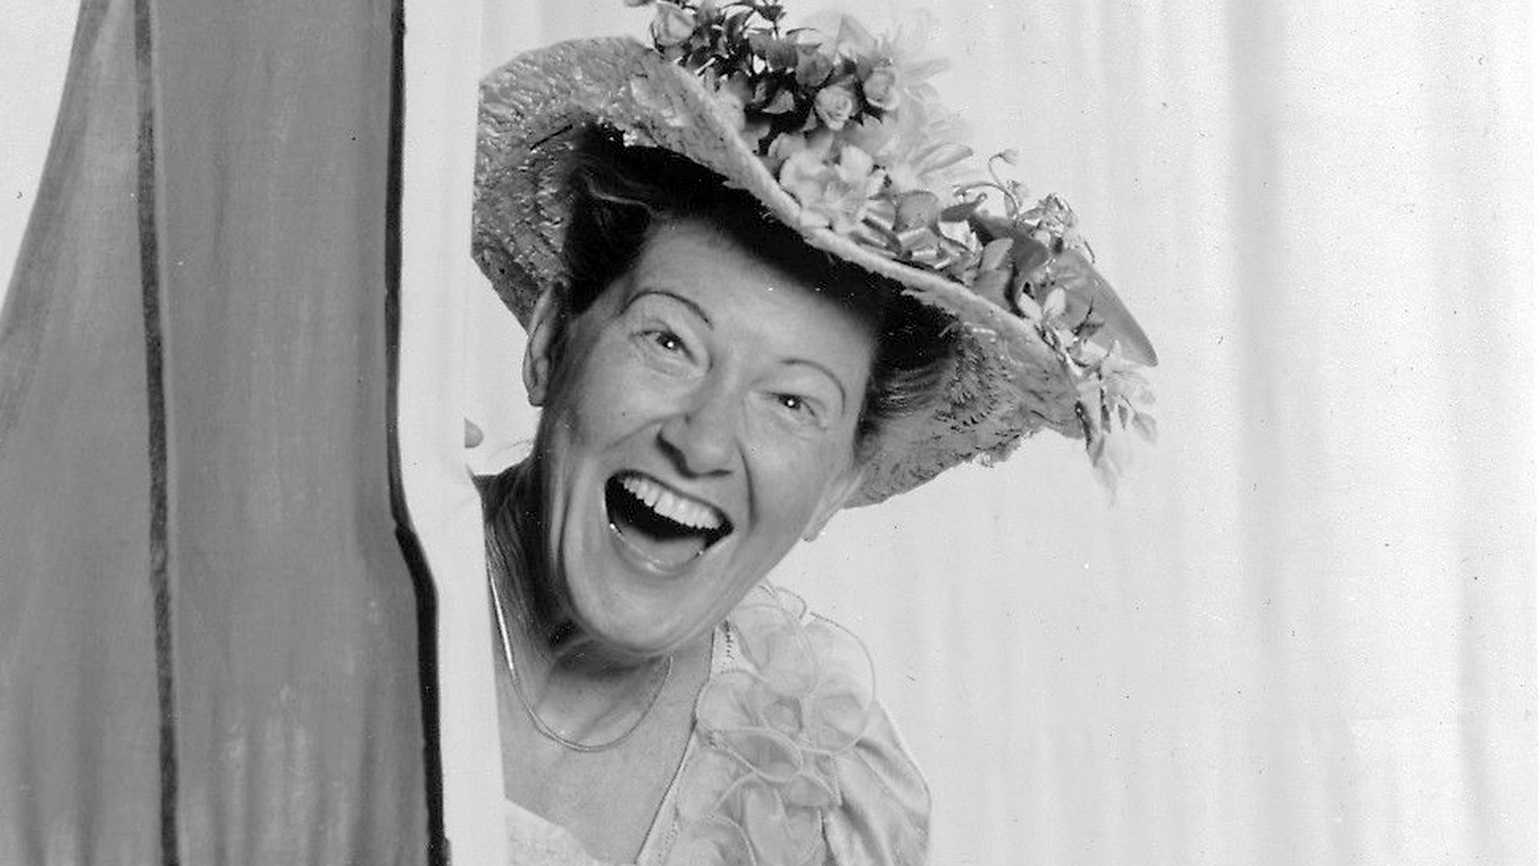 Sarah Ophelia Cannon, better known as Minnie Pearl